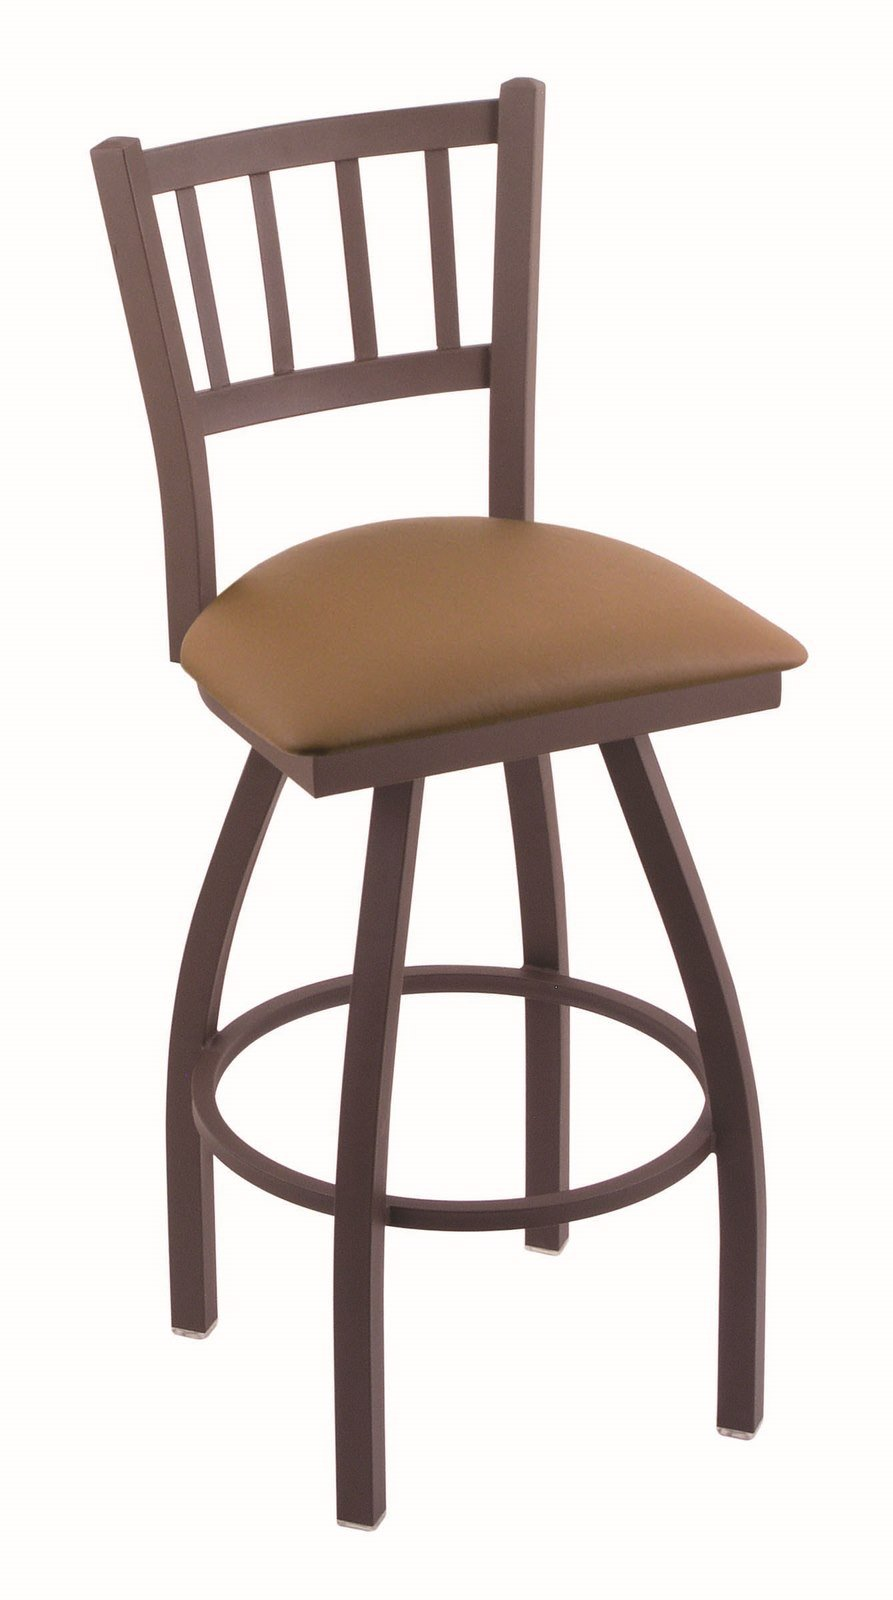 Holland Bar Stool Co. 810 Contessa 25'' Counter Stool with Bronze Finish and Swivel Seat, Allante Beechwood by Holland Bar Stool Co.